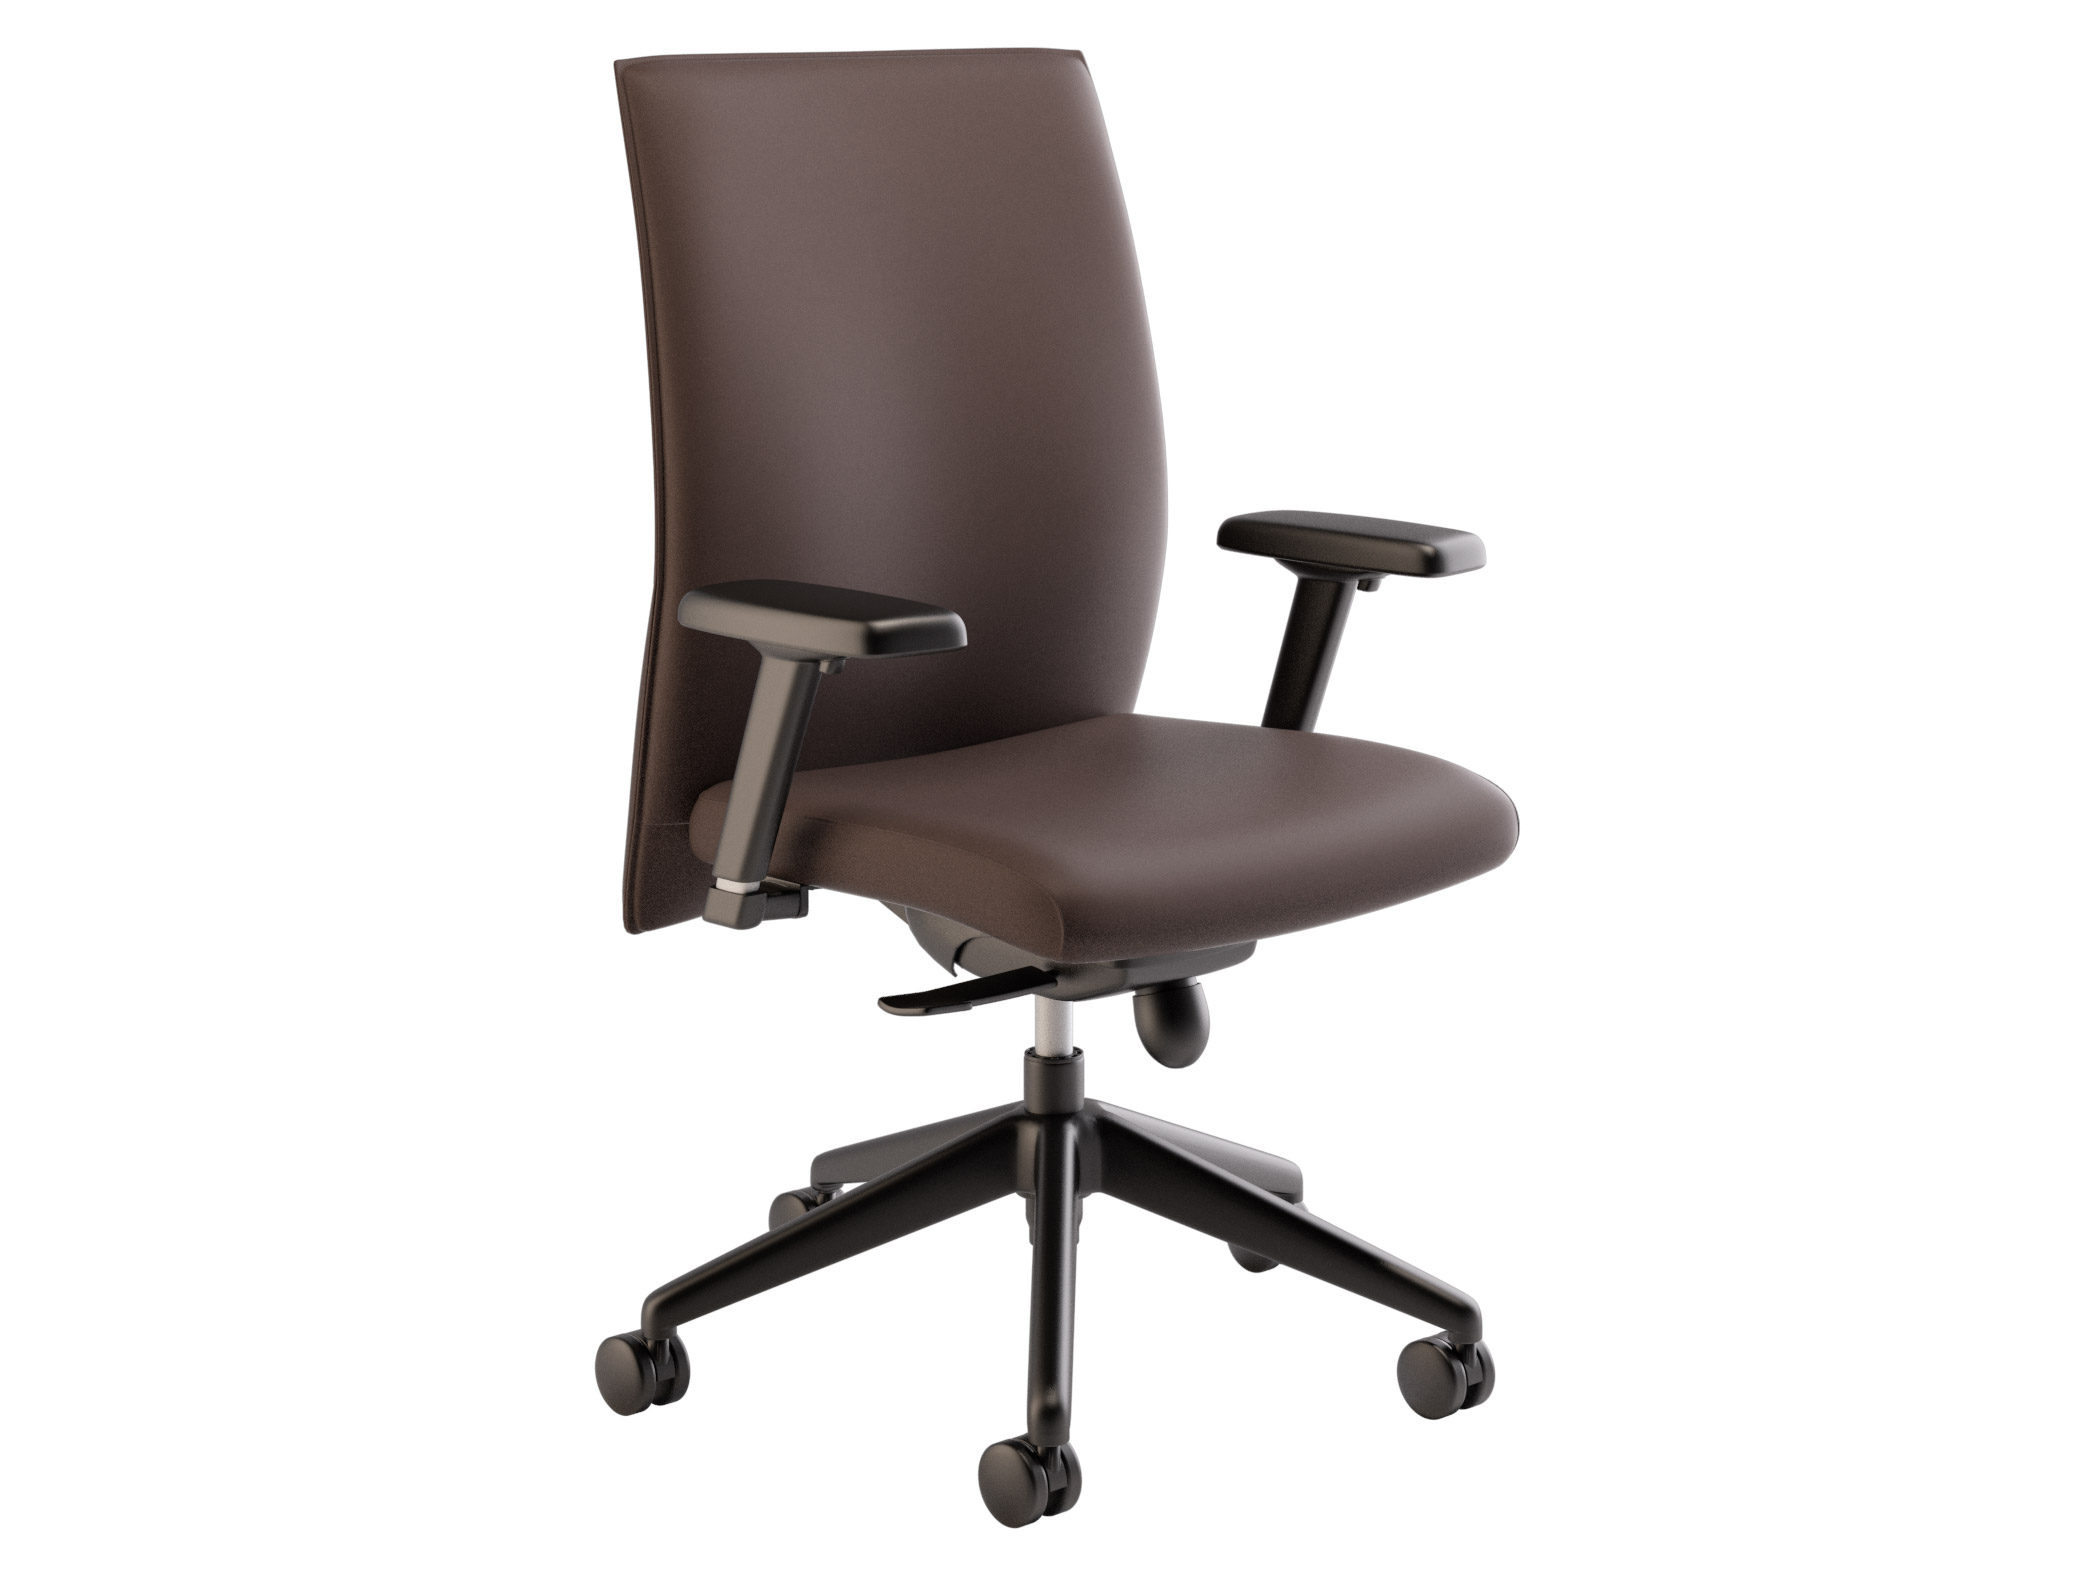 brown office chair without arms bliss covers and unique wedding decorations task chairs for